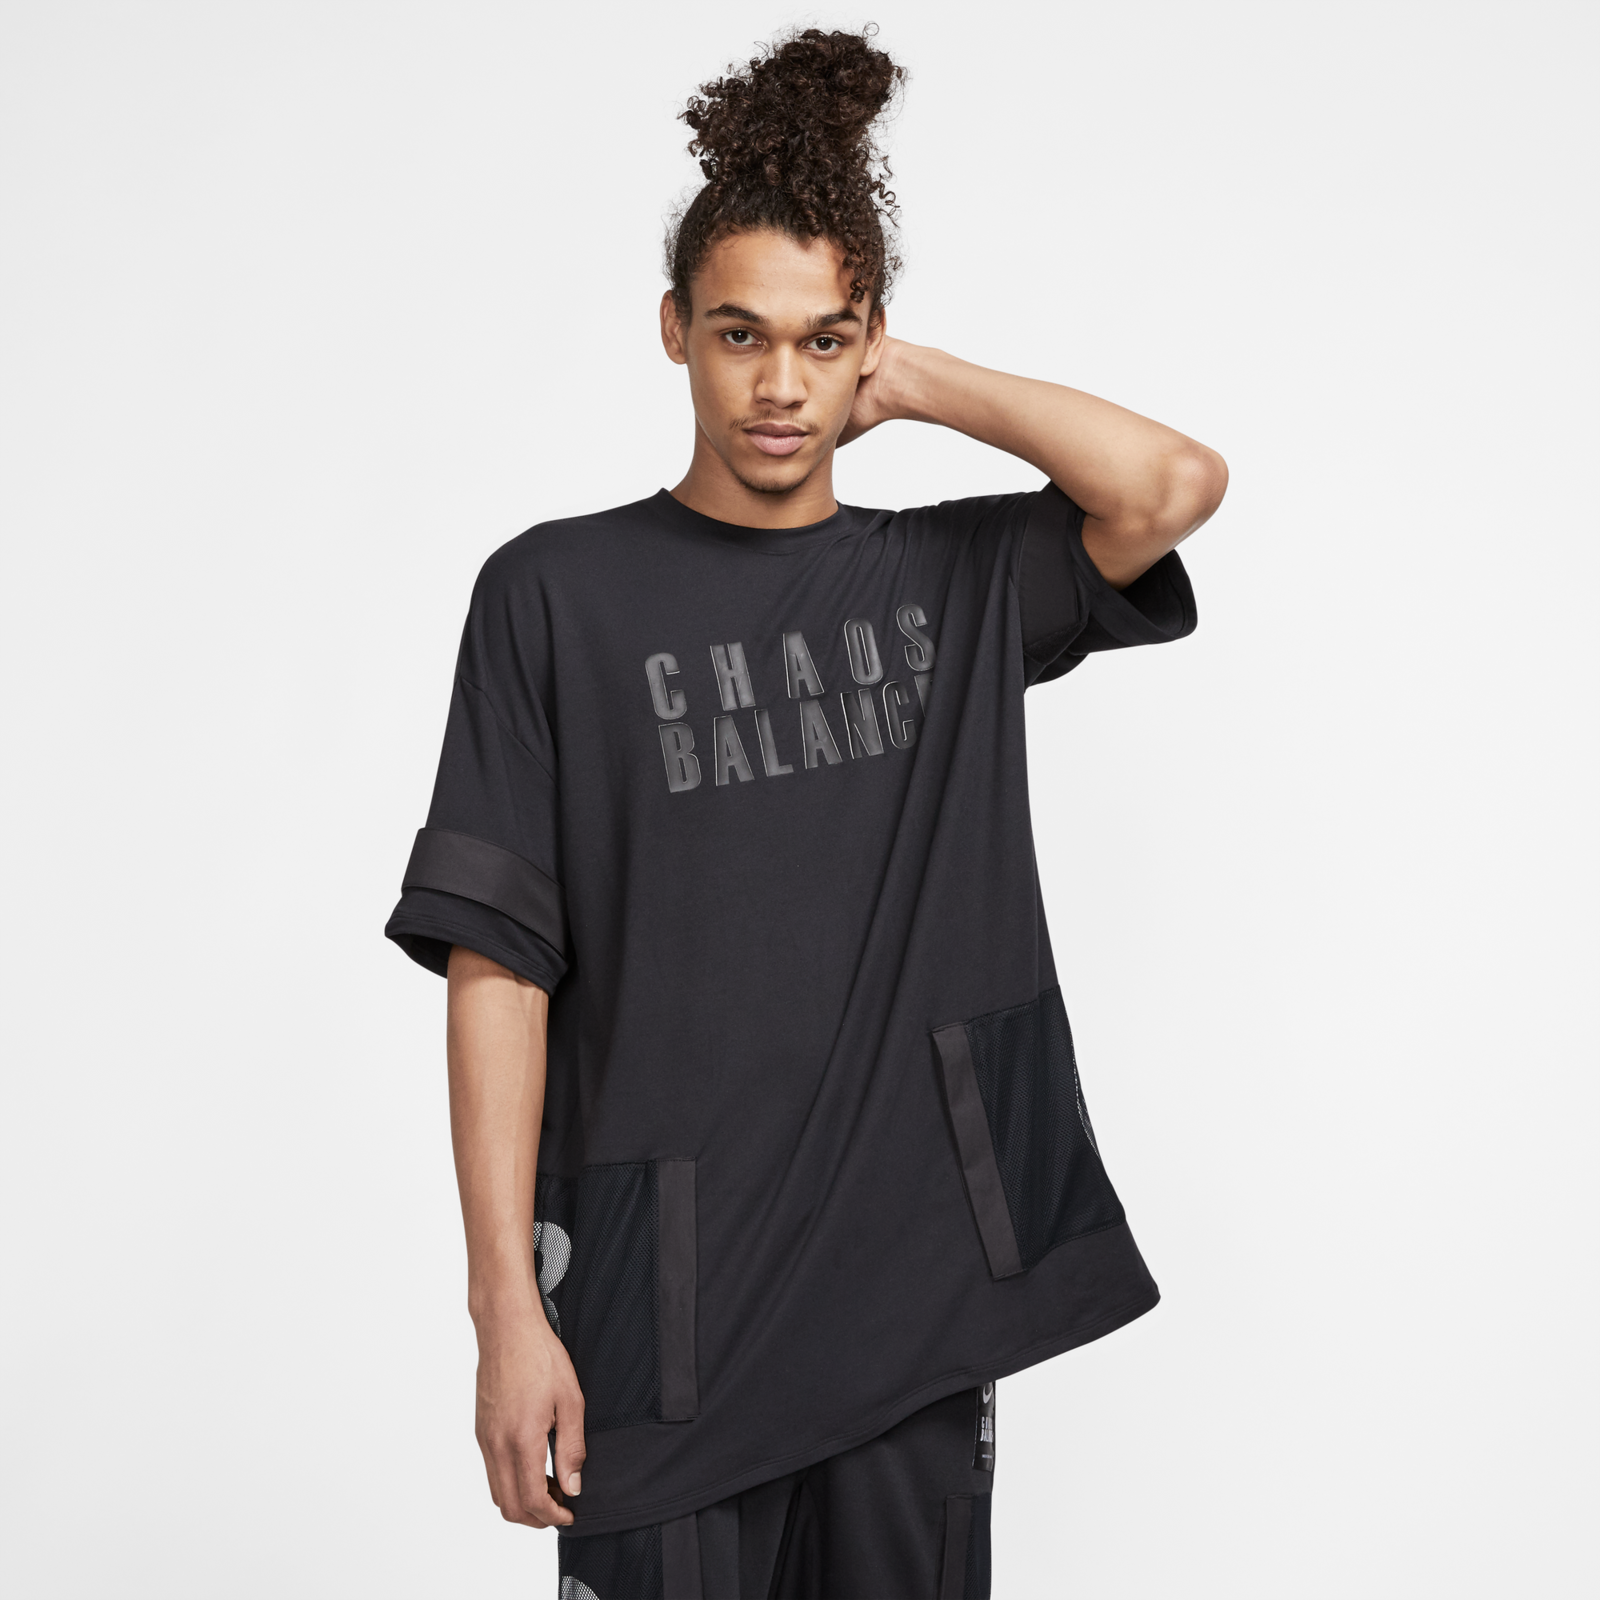 Nike x UNDERCOVER Track Suit, T-Shirt and Longsleeve 37